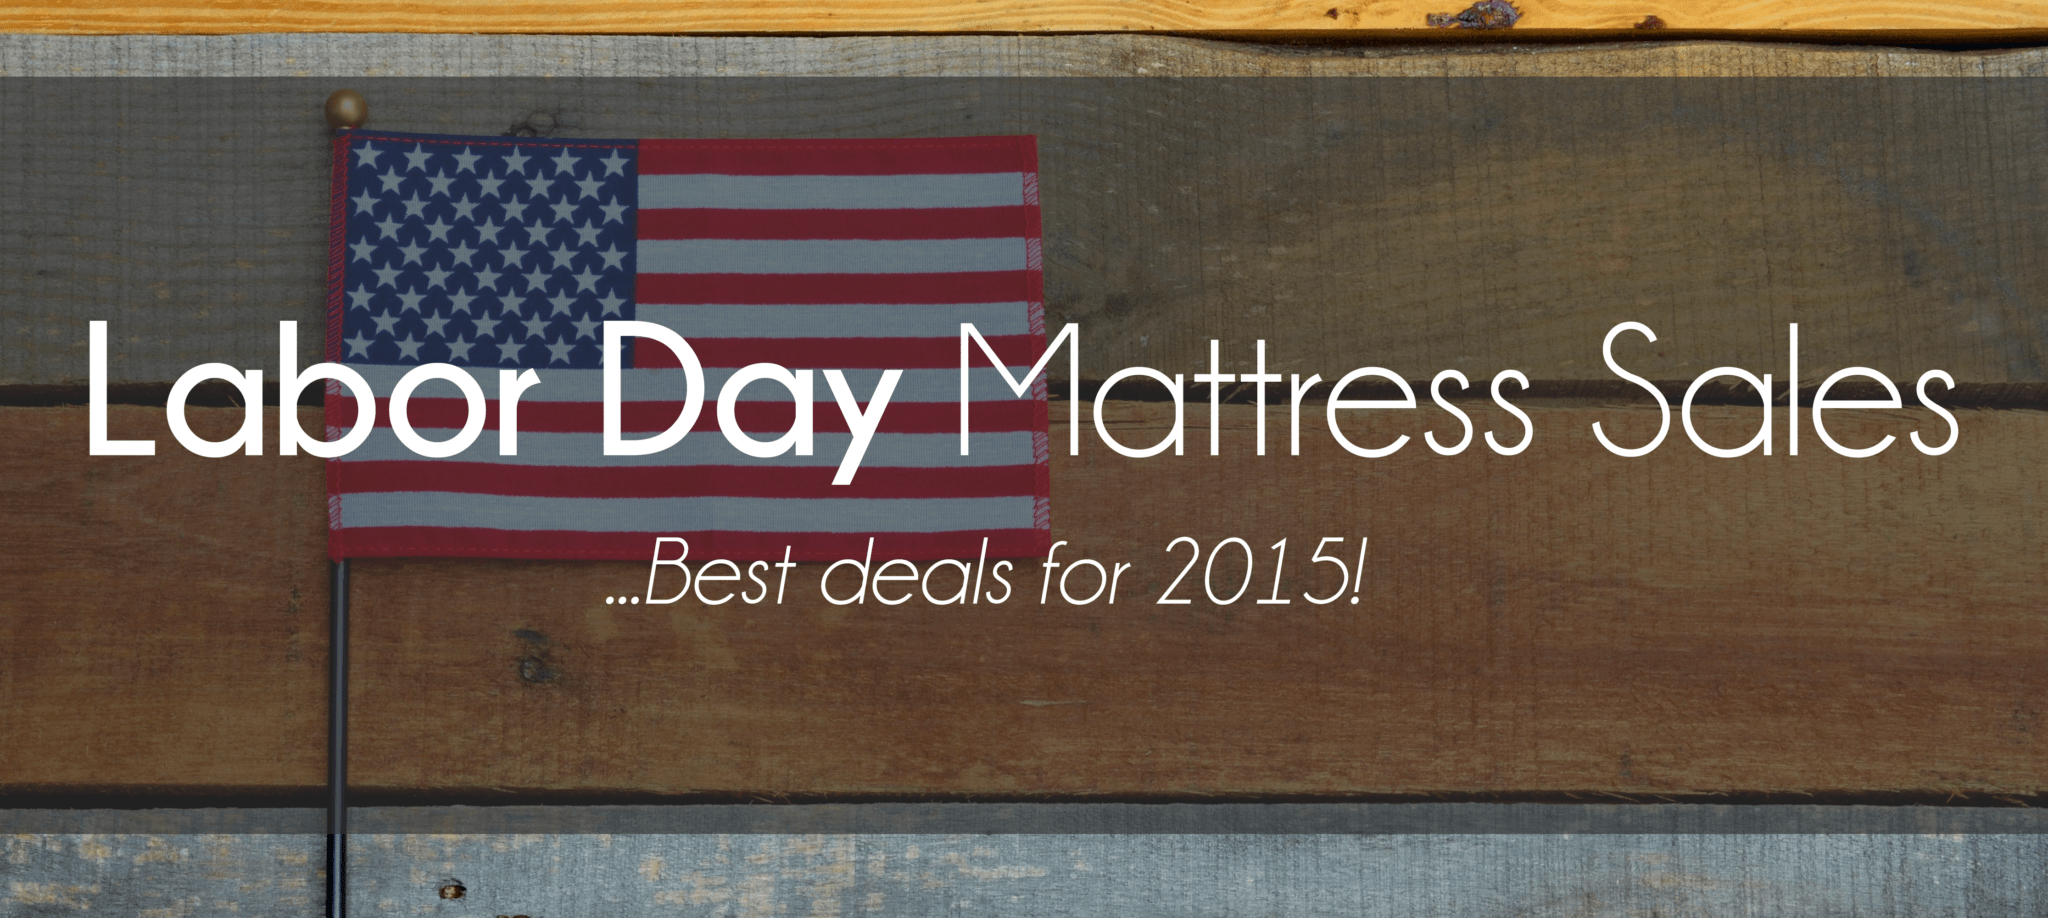 Labor Day Mattress Sale Colorado Springs Panem Giu